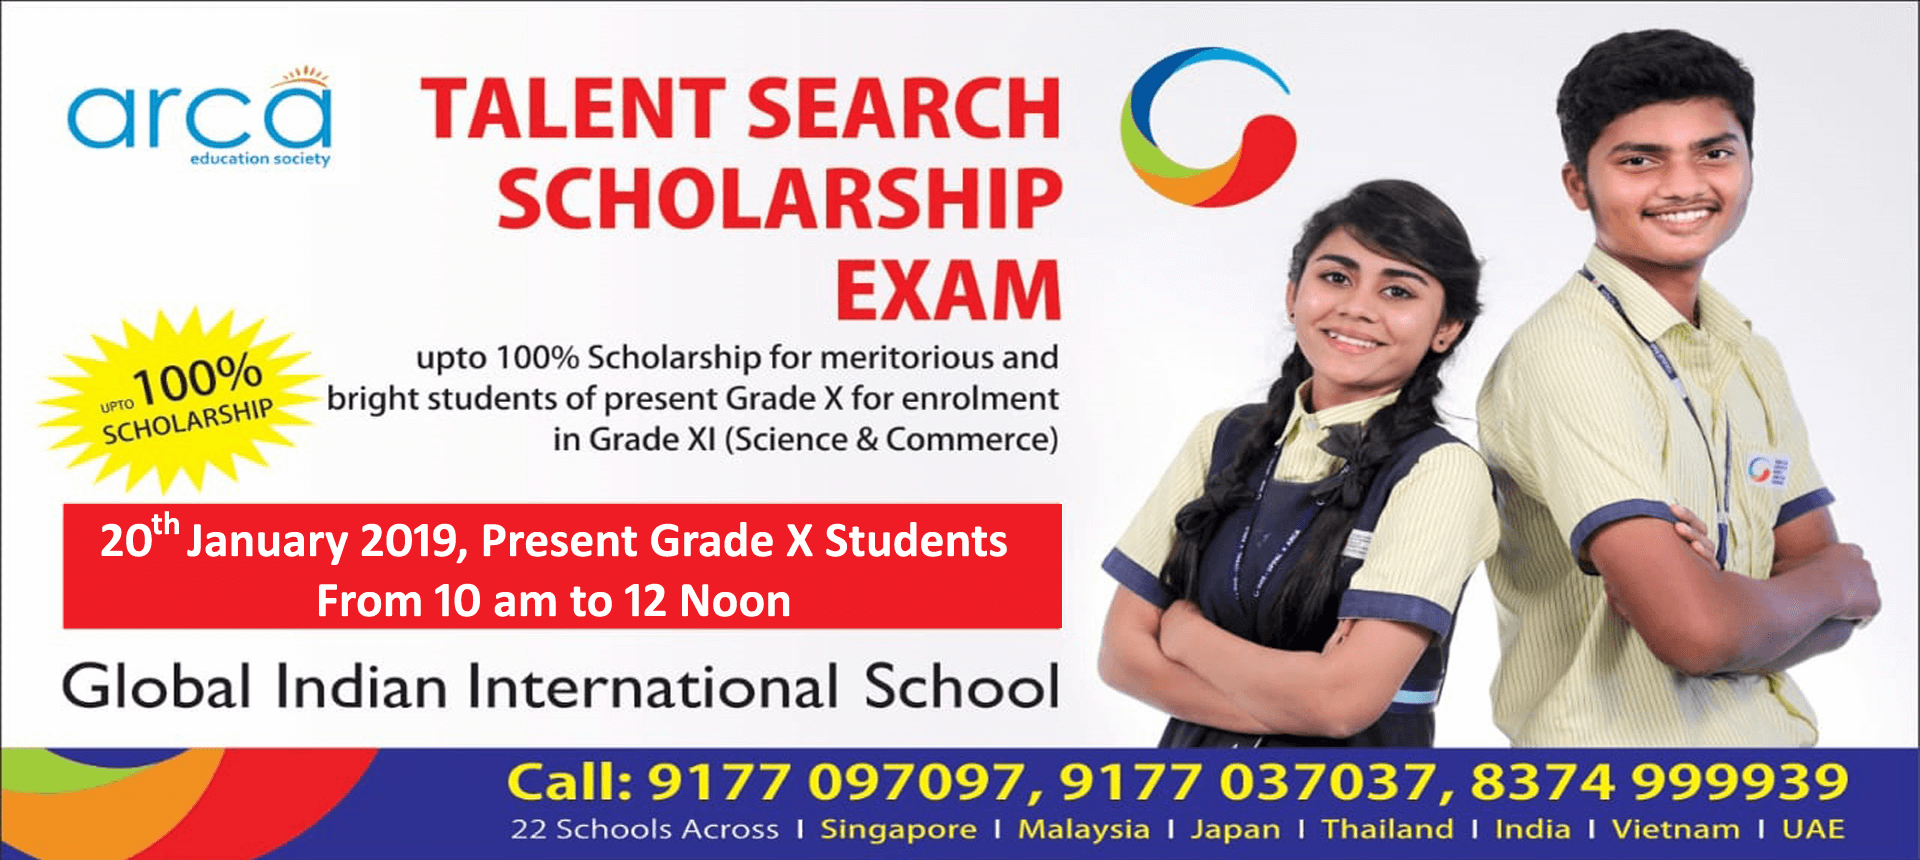 talent search exam for class 10, global indian international school